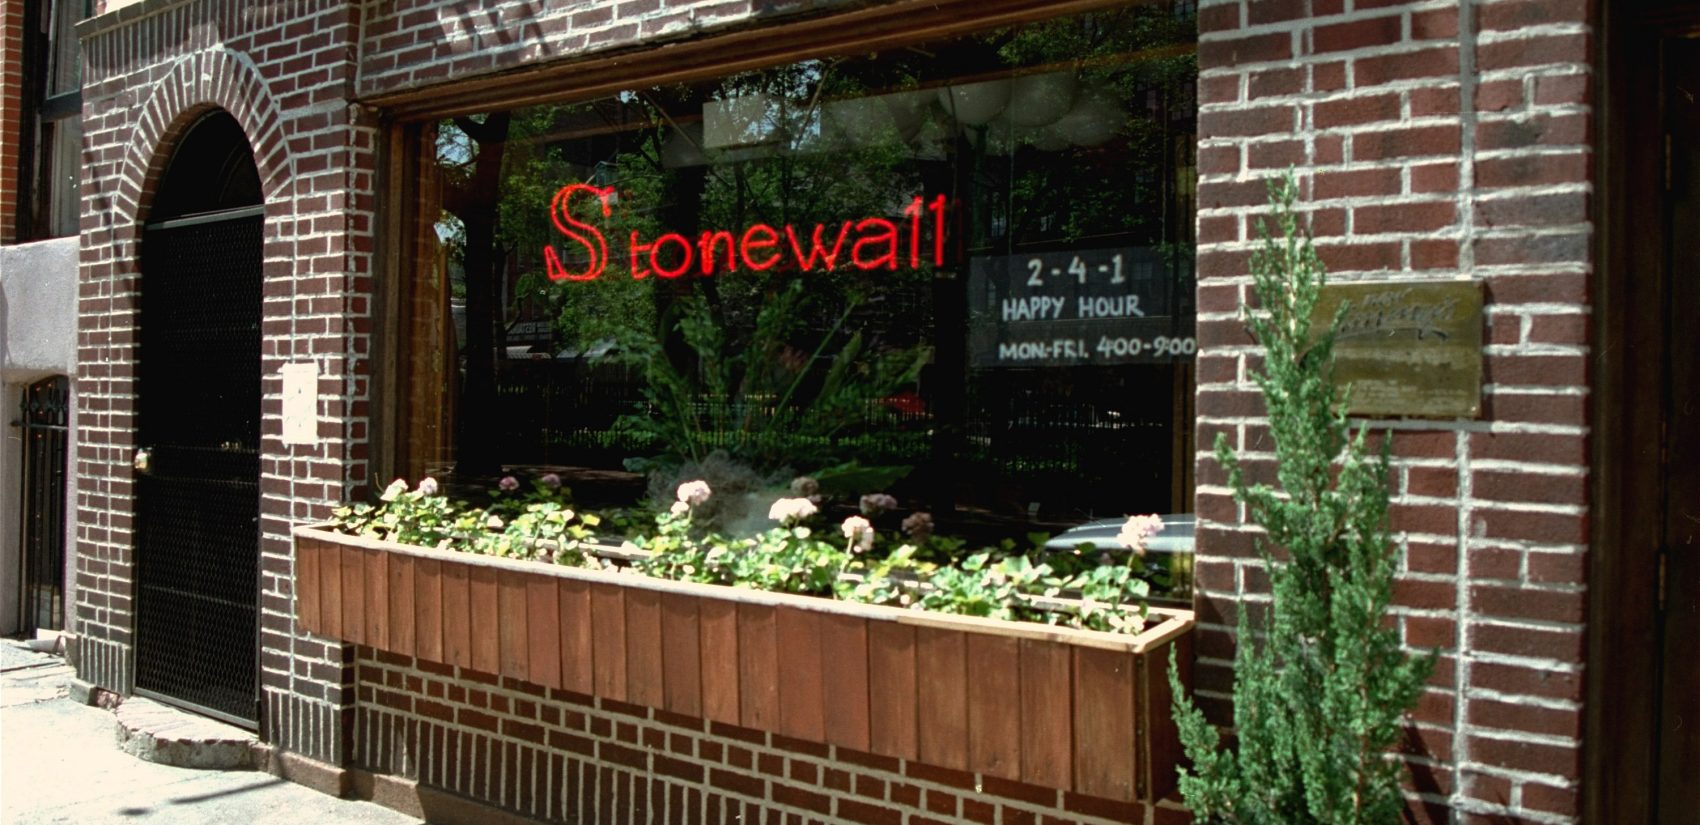 An exterior view of the Stonewall Inn in Greenwich Village section of New York, site of the 1969 riot that sparked the Gay Rights Movement.  This photo was taken in May 1994. (AP Photo/Kevin Larkin)